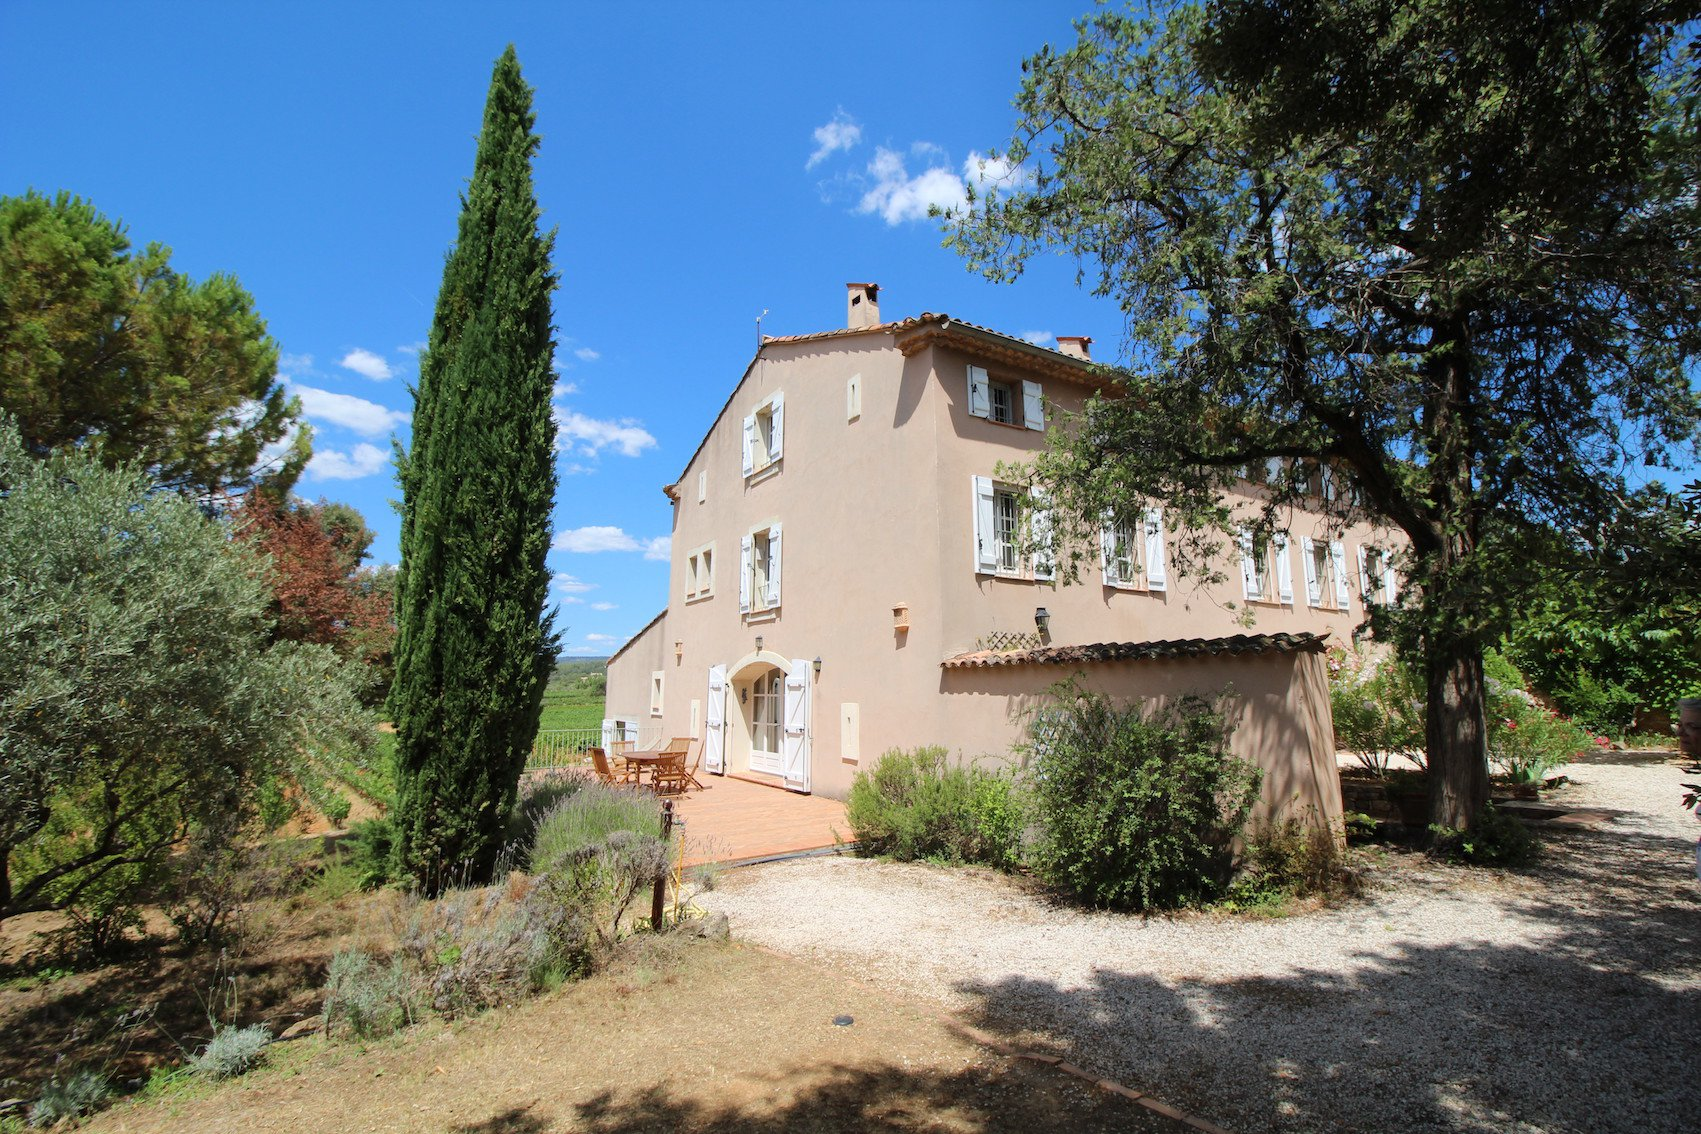 5 minutes from Cotignac, a lovely an unique property